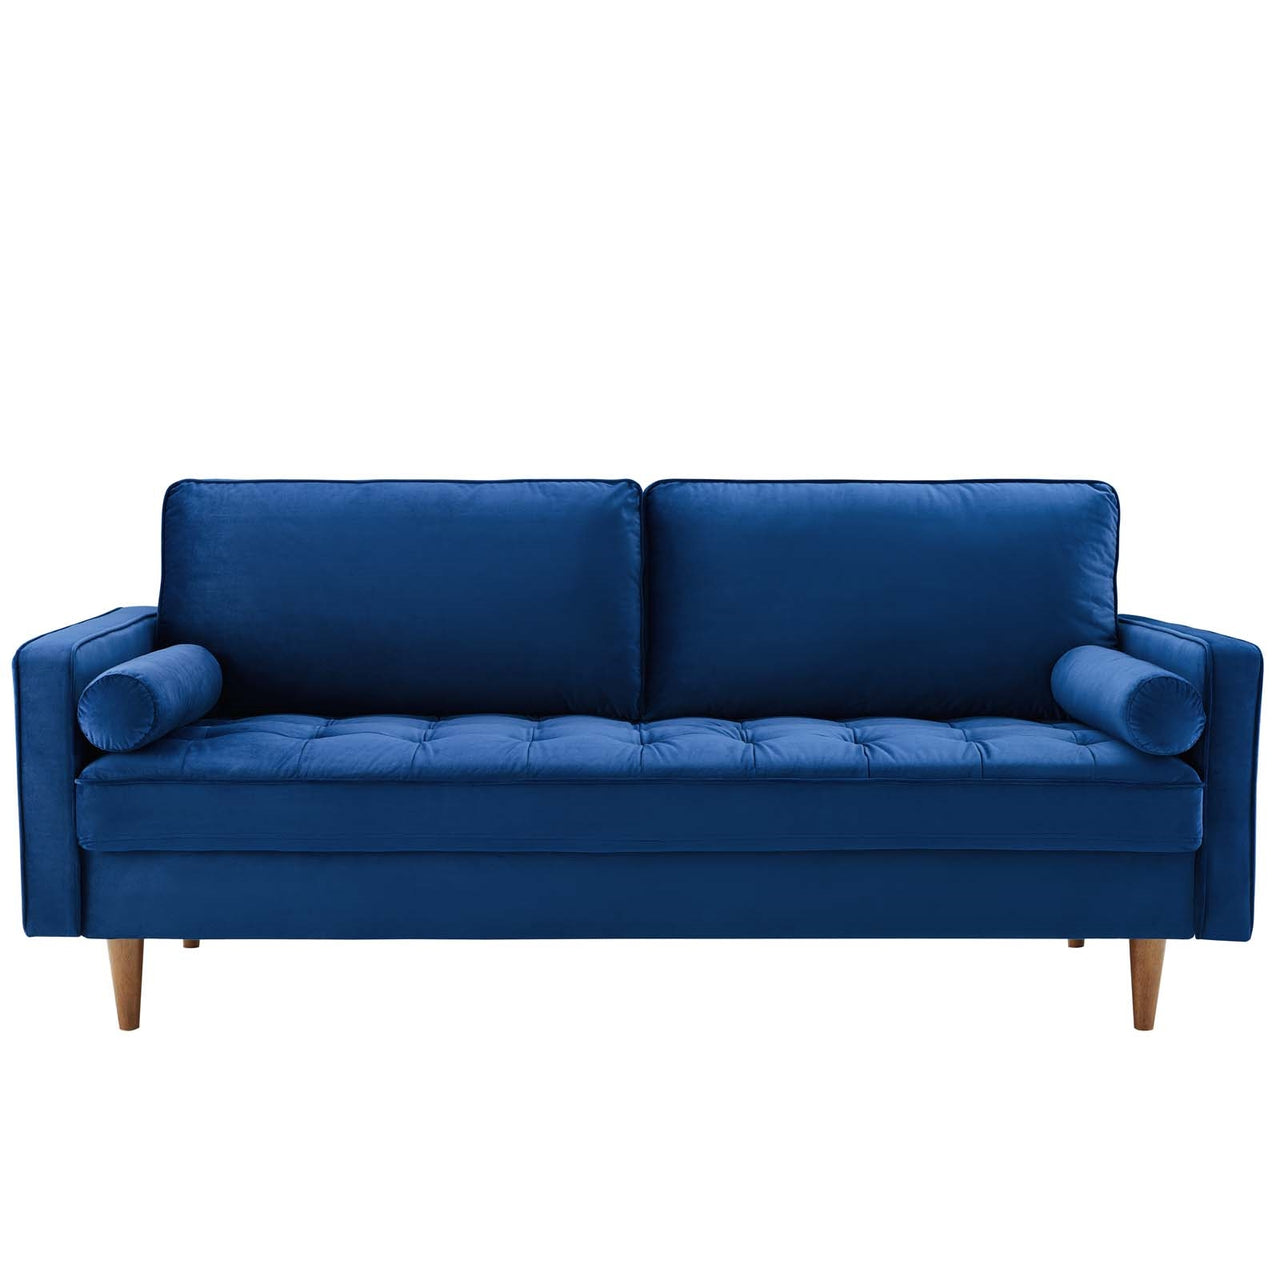 Valerie Velvet Sofa in Navy